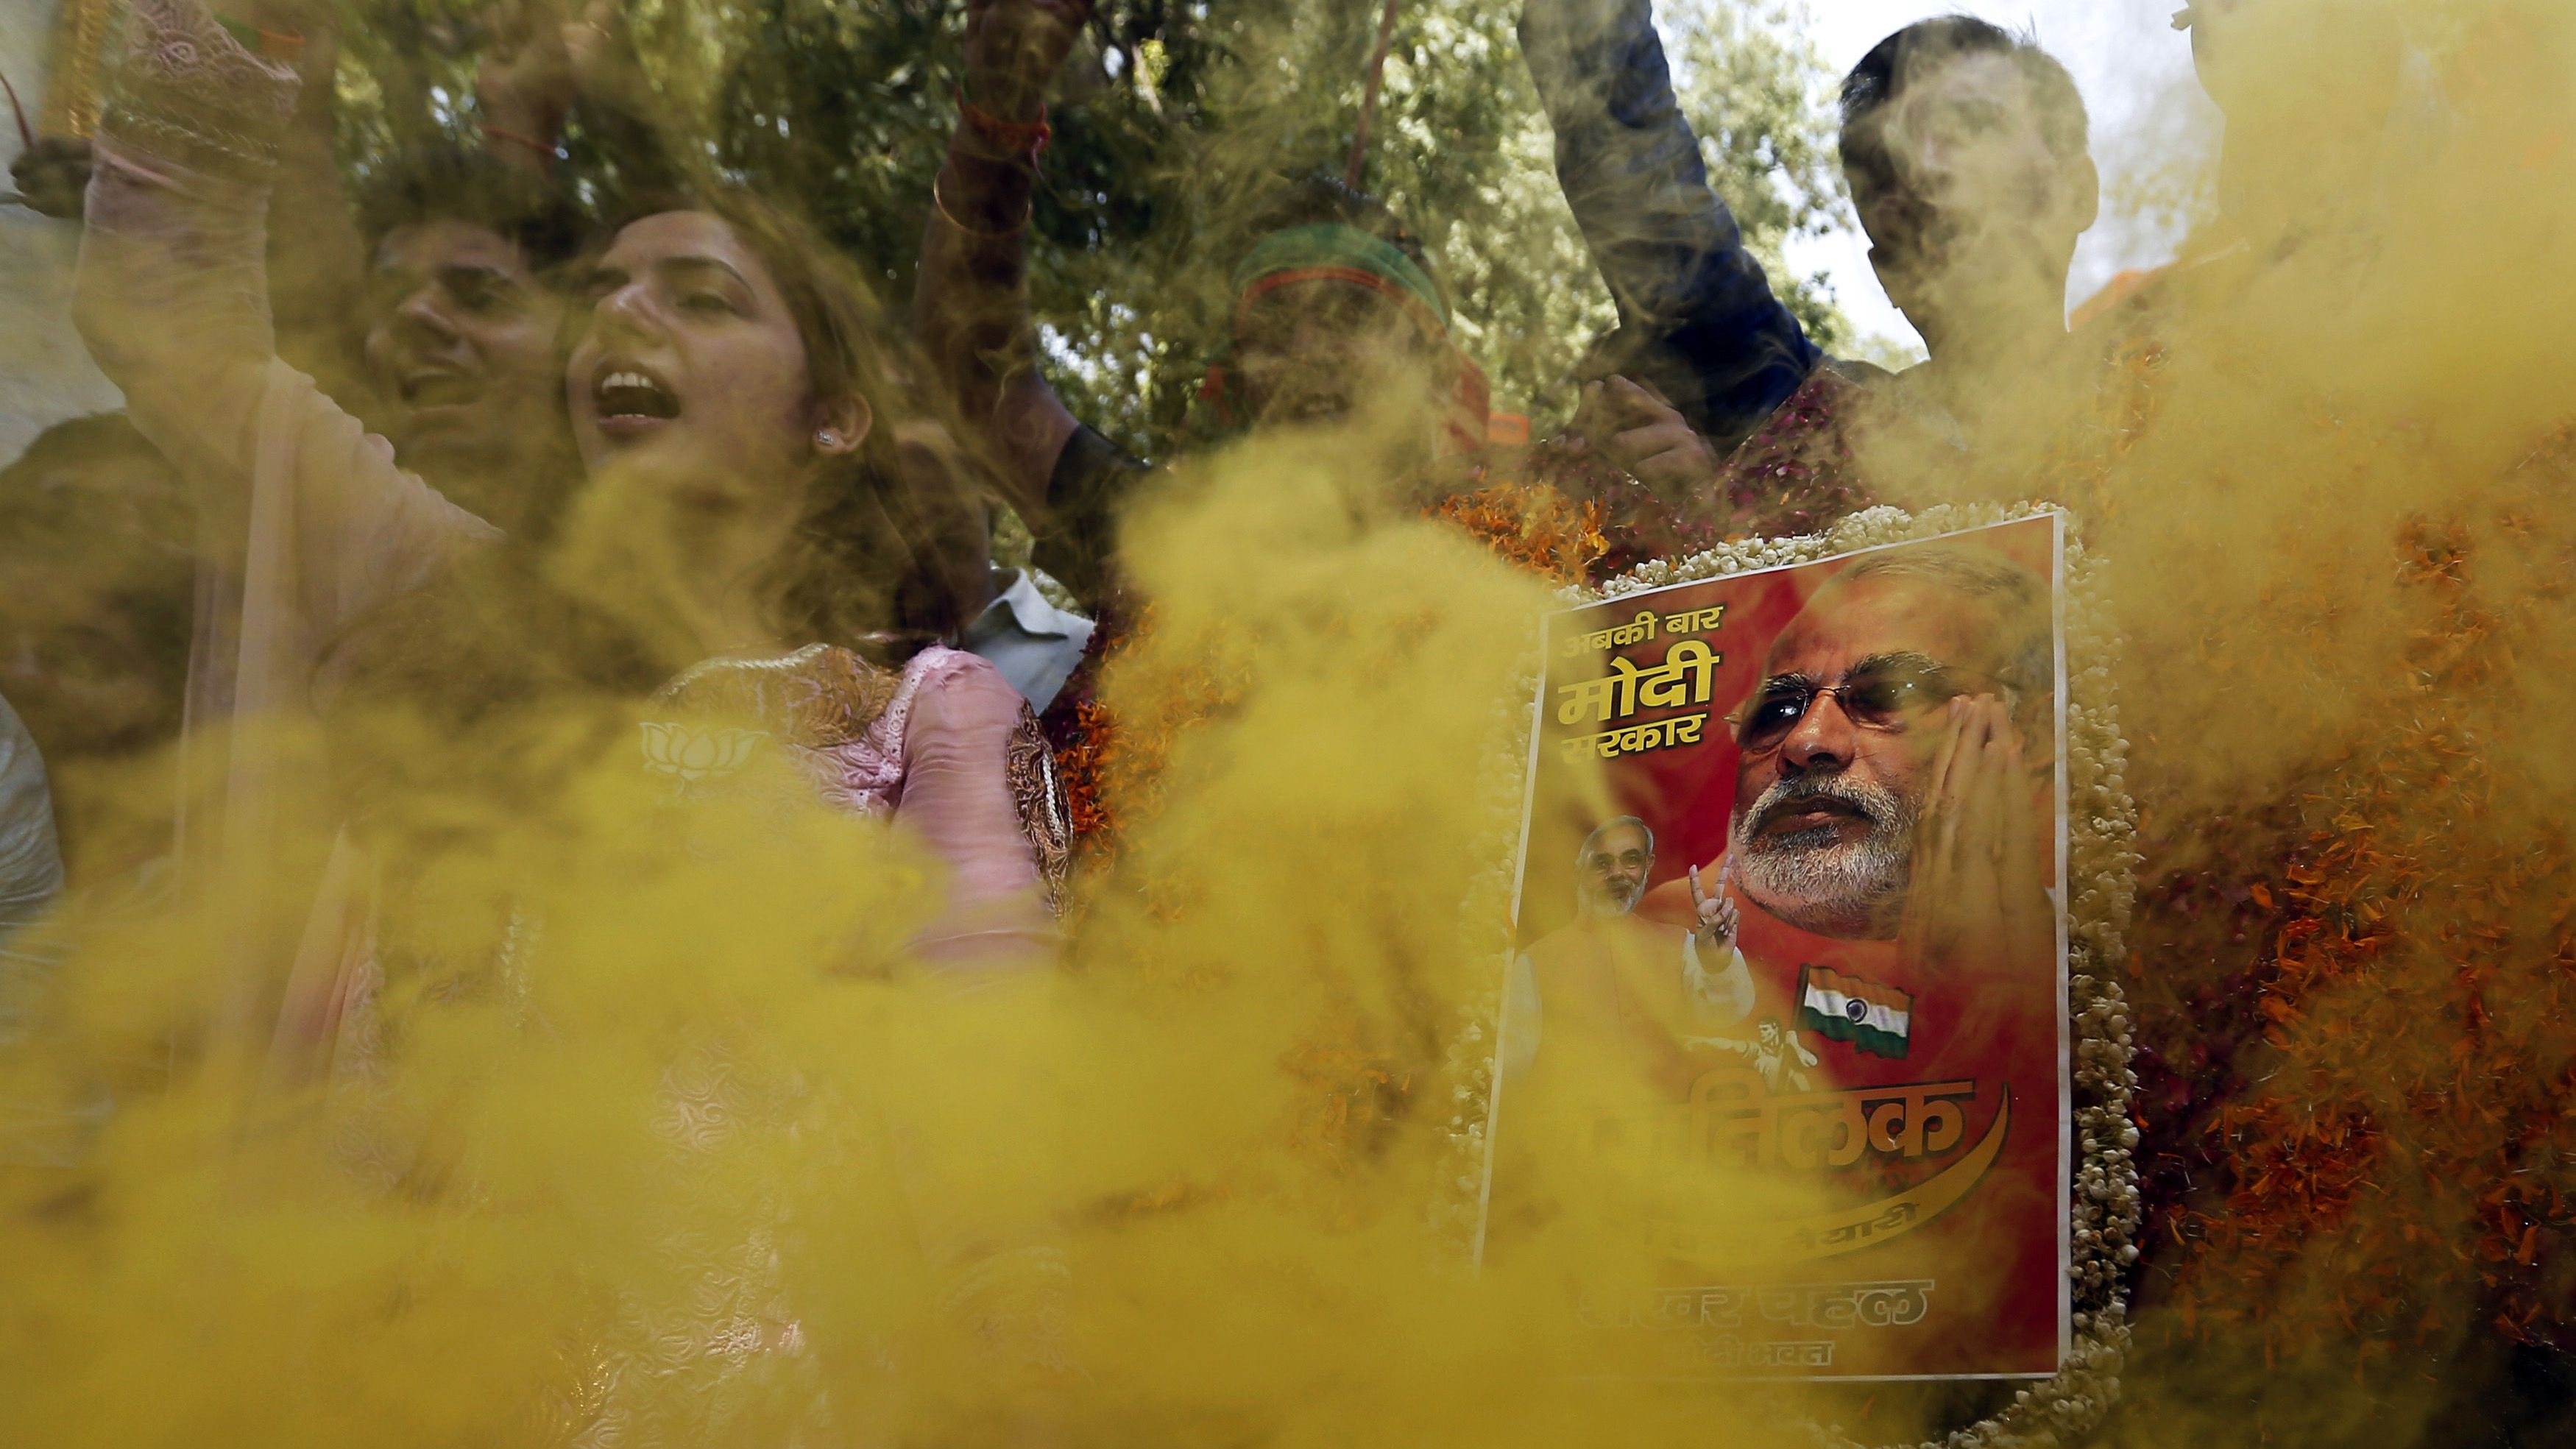 Supporters of India's Bharatiya Janata Party (BJP) hold a portrait of Hindu nationalist Narendra Modi, the prime ministerial candidate for BJP, during celebrations outside the party headquarters in New Delhi May 16, 2014. Opposition candidate Modi will be the next prime minister of India, with early election results on Friday showing the pro-business Hindu nationalist and his party headed for the biggest victory the country has seen in 30 years. REUTERS/Adnan Abidi (INDIA - Tags: POLITICS ELECTIONS TPX IMAGES OF THE DAY) - RTR3PEVY